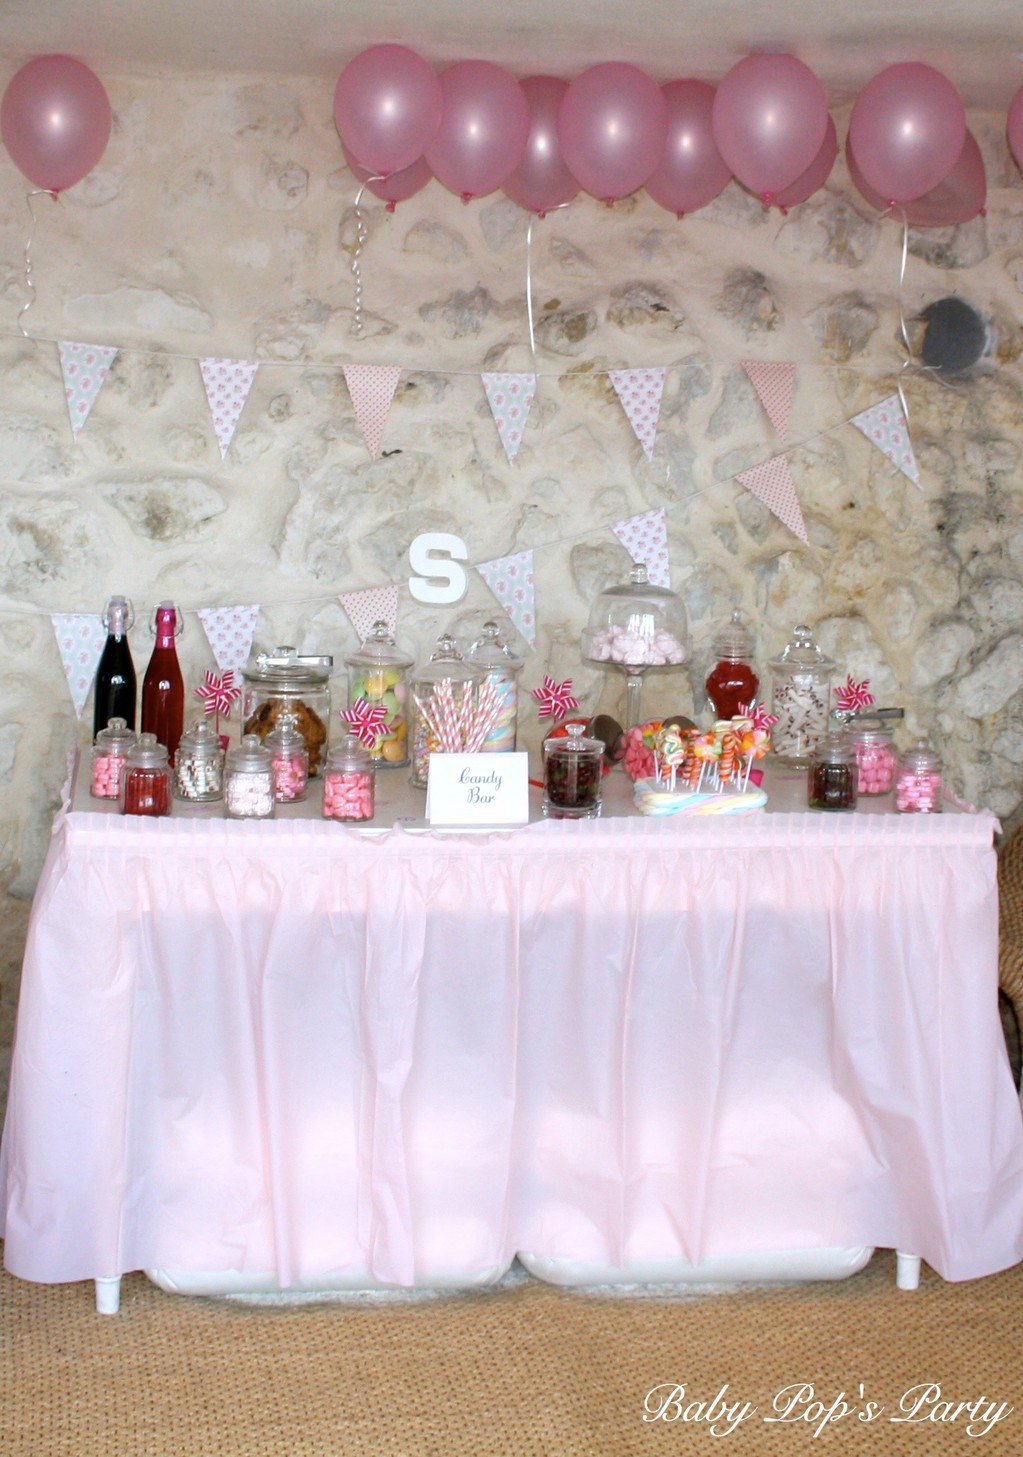 Top En image - BABY POP'S PARTY ! Décoration Baby Shower France XA85